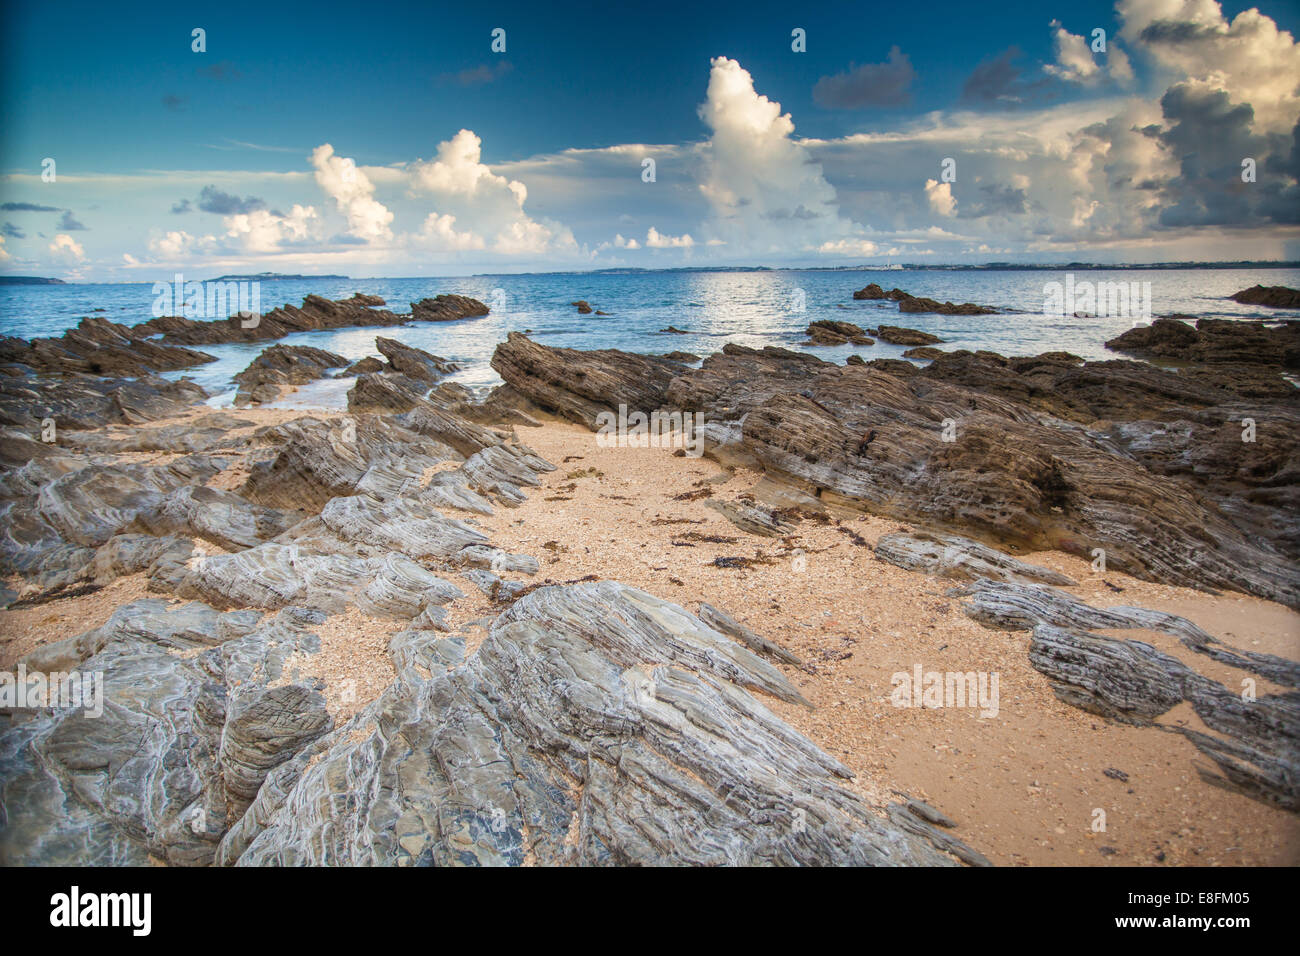 Japan, Okinawa, Rocks on Kin Beach - Stock Image